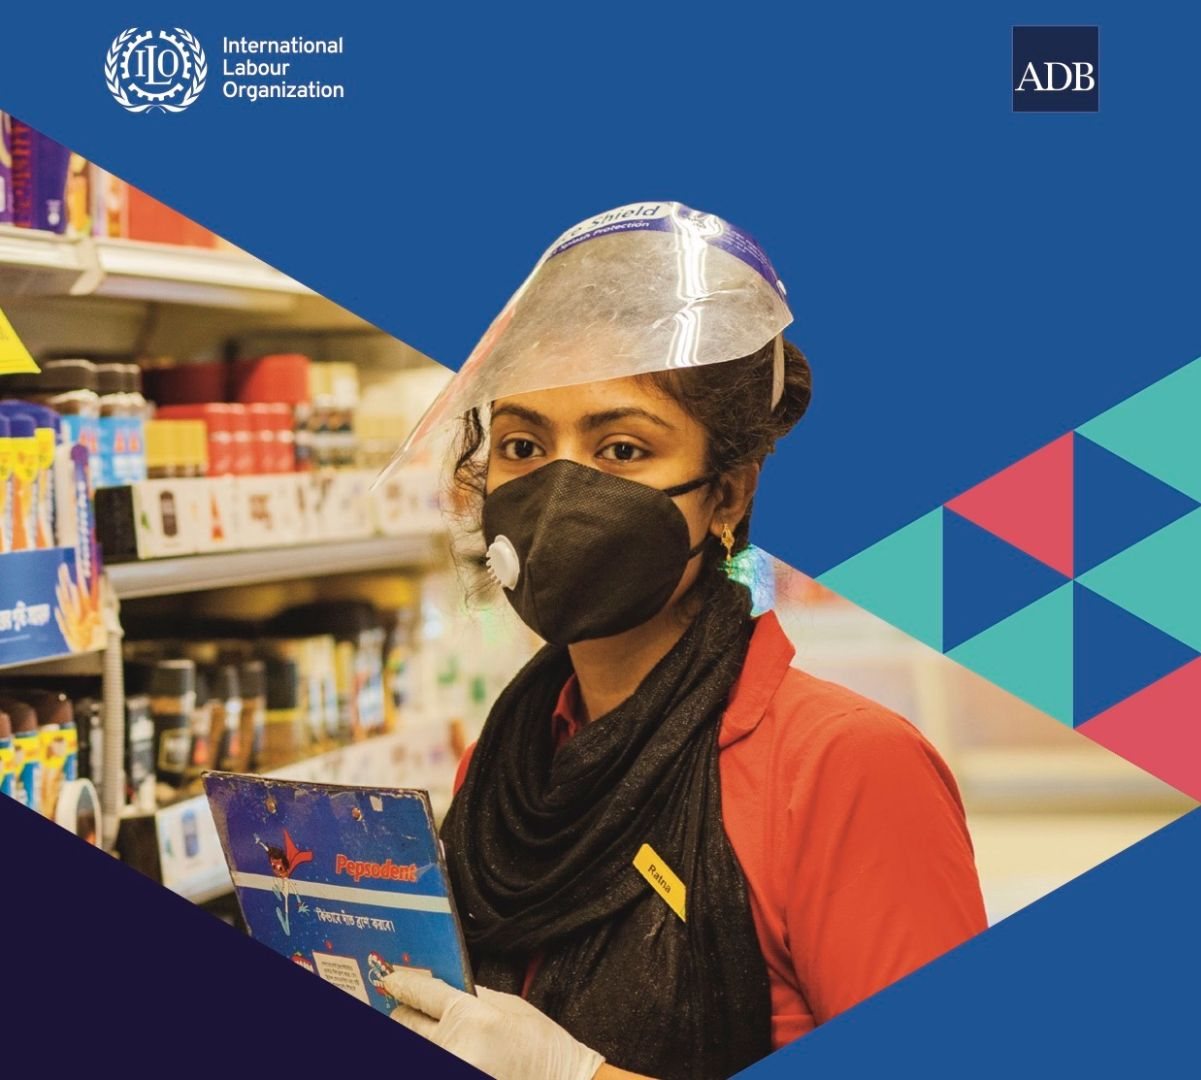 ILO-ADB_Youth employment and COVID-19 in Asia-Pacific.jpg